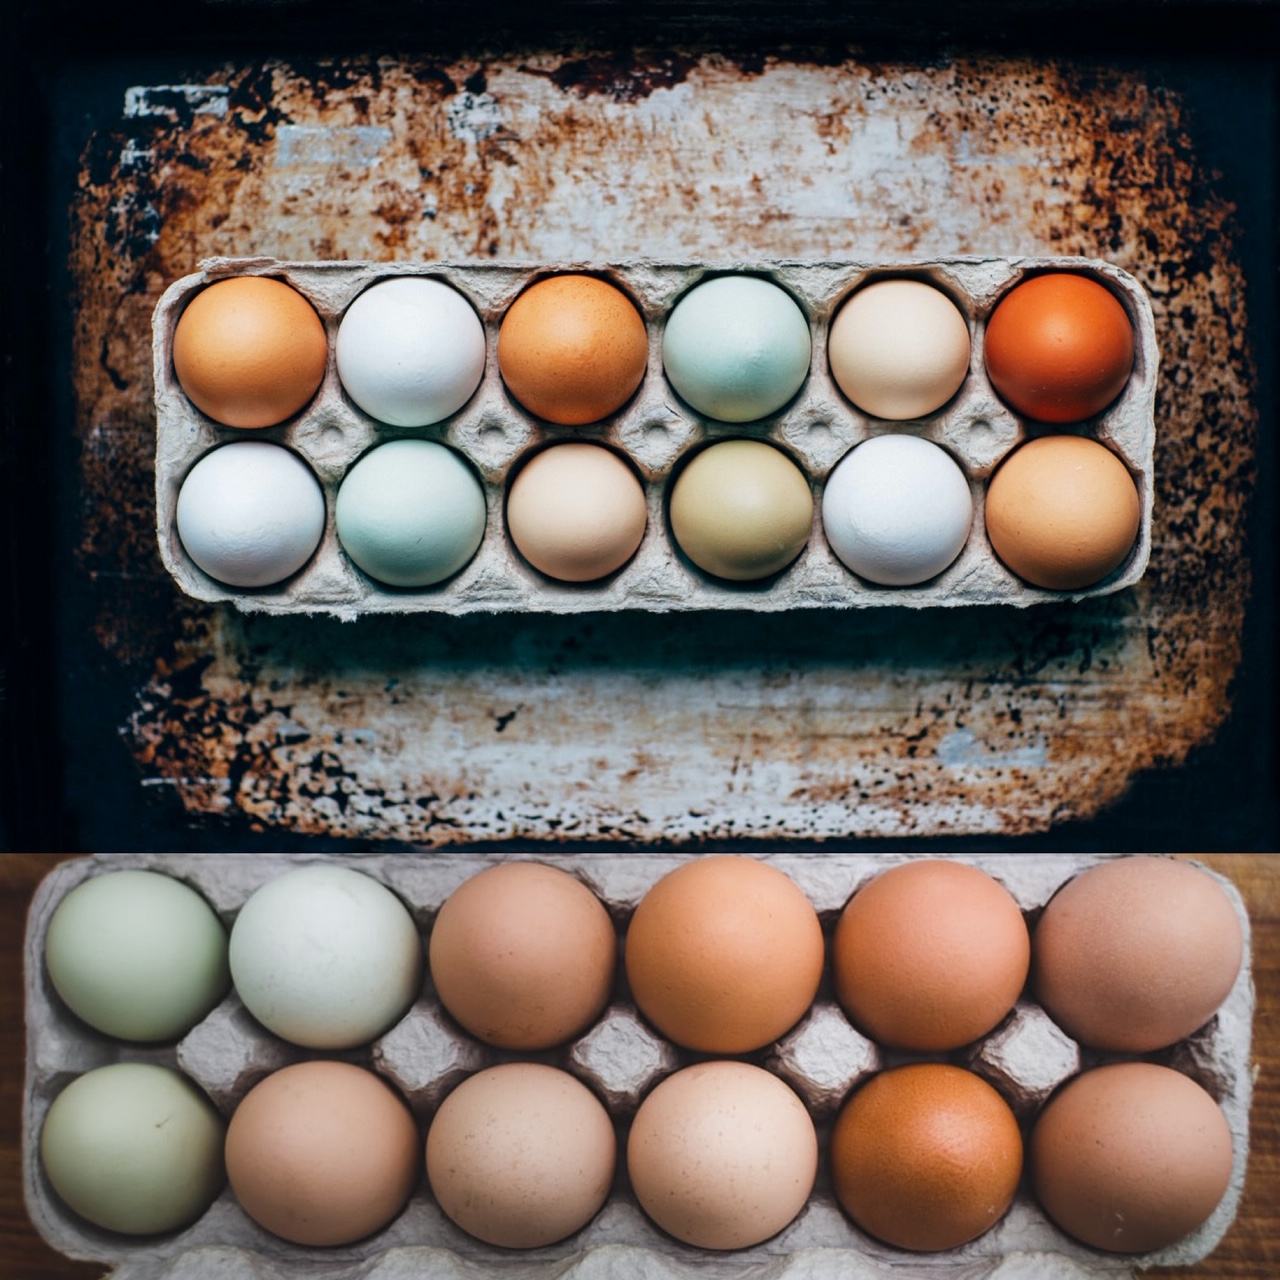 Farm Fresh Eggs (Organic Free Range Mother Earth Fed) One Dozen